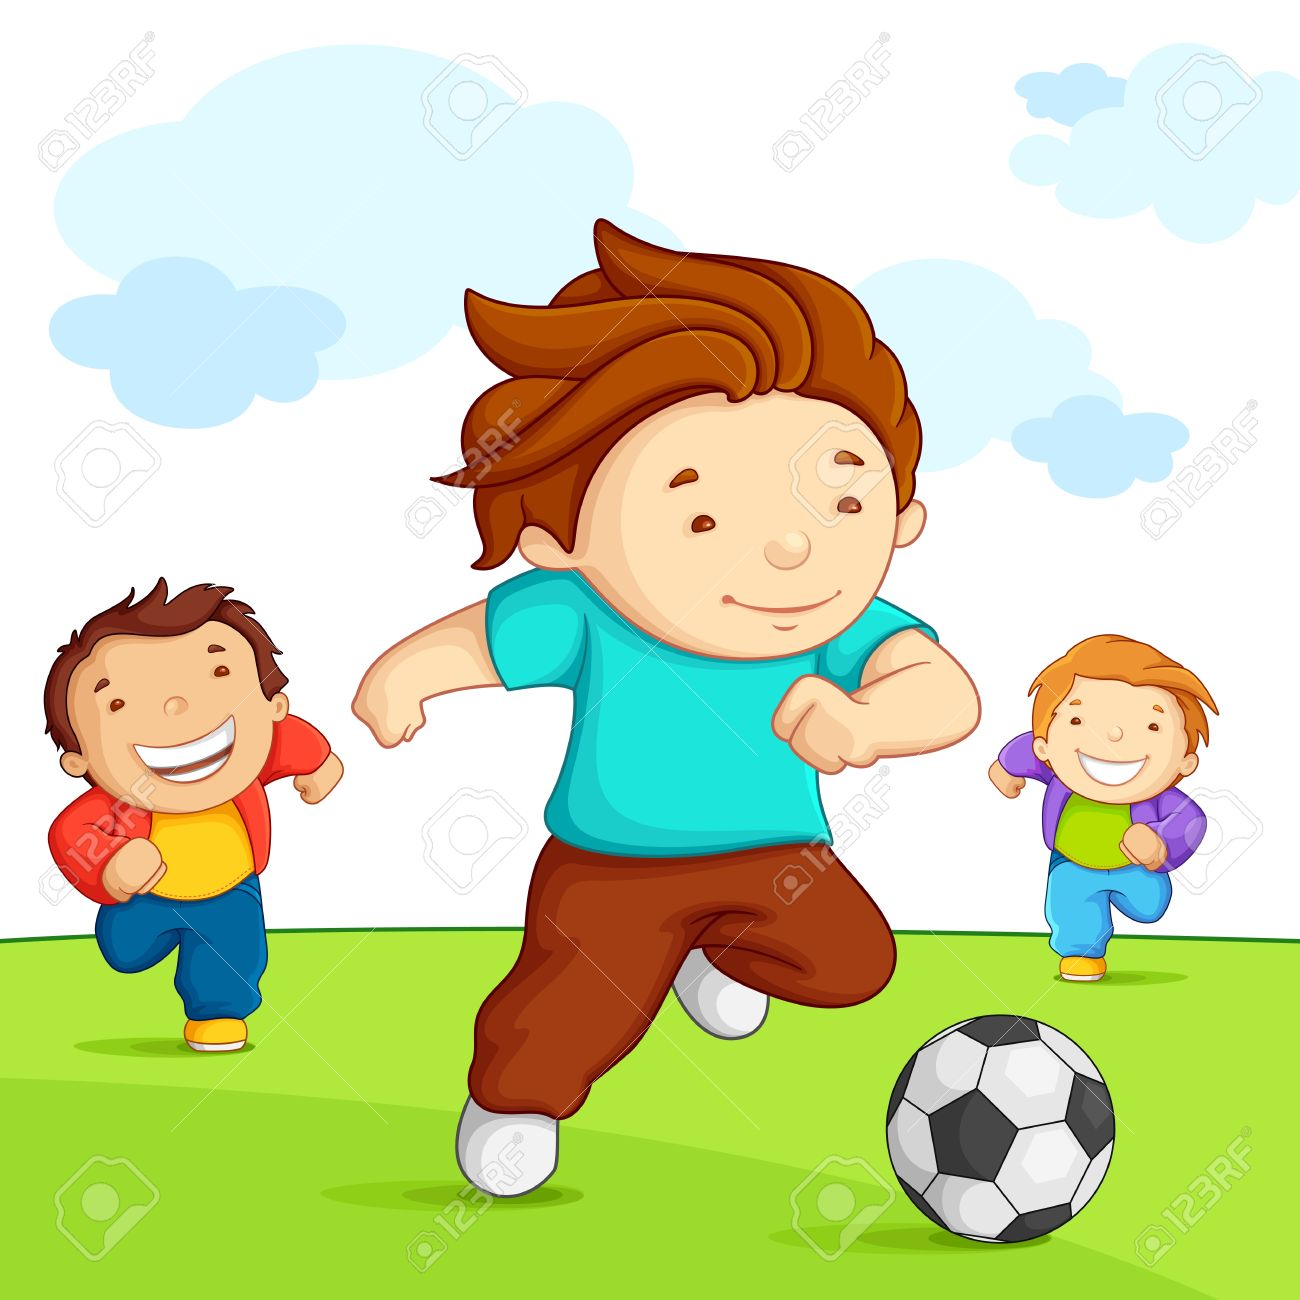 Boy playing soccer clipart 4 » Clipart Station.